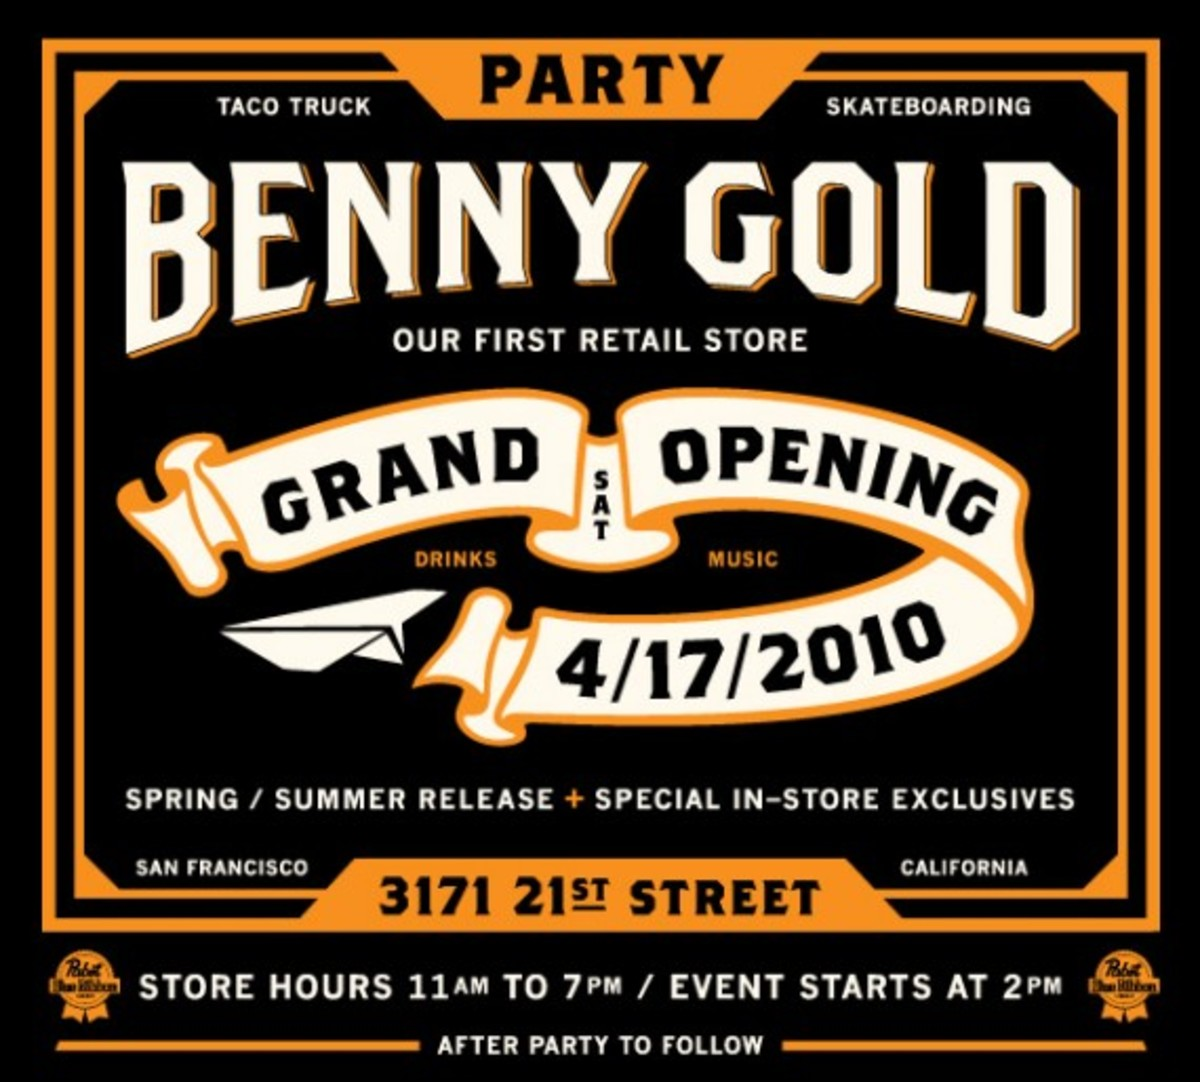 benny-gold-grand-opening-party